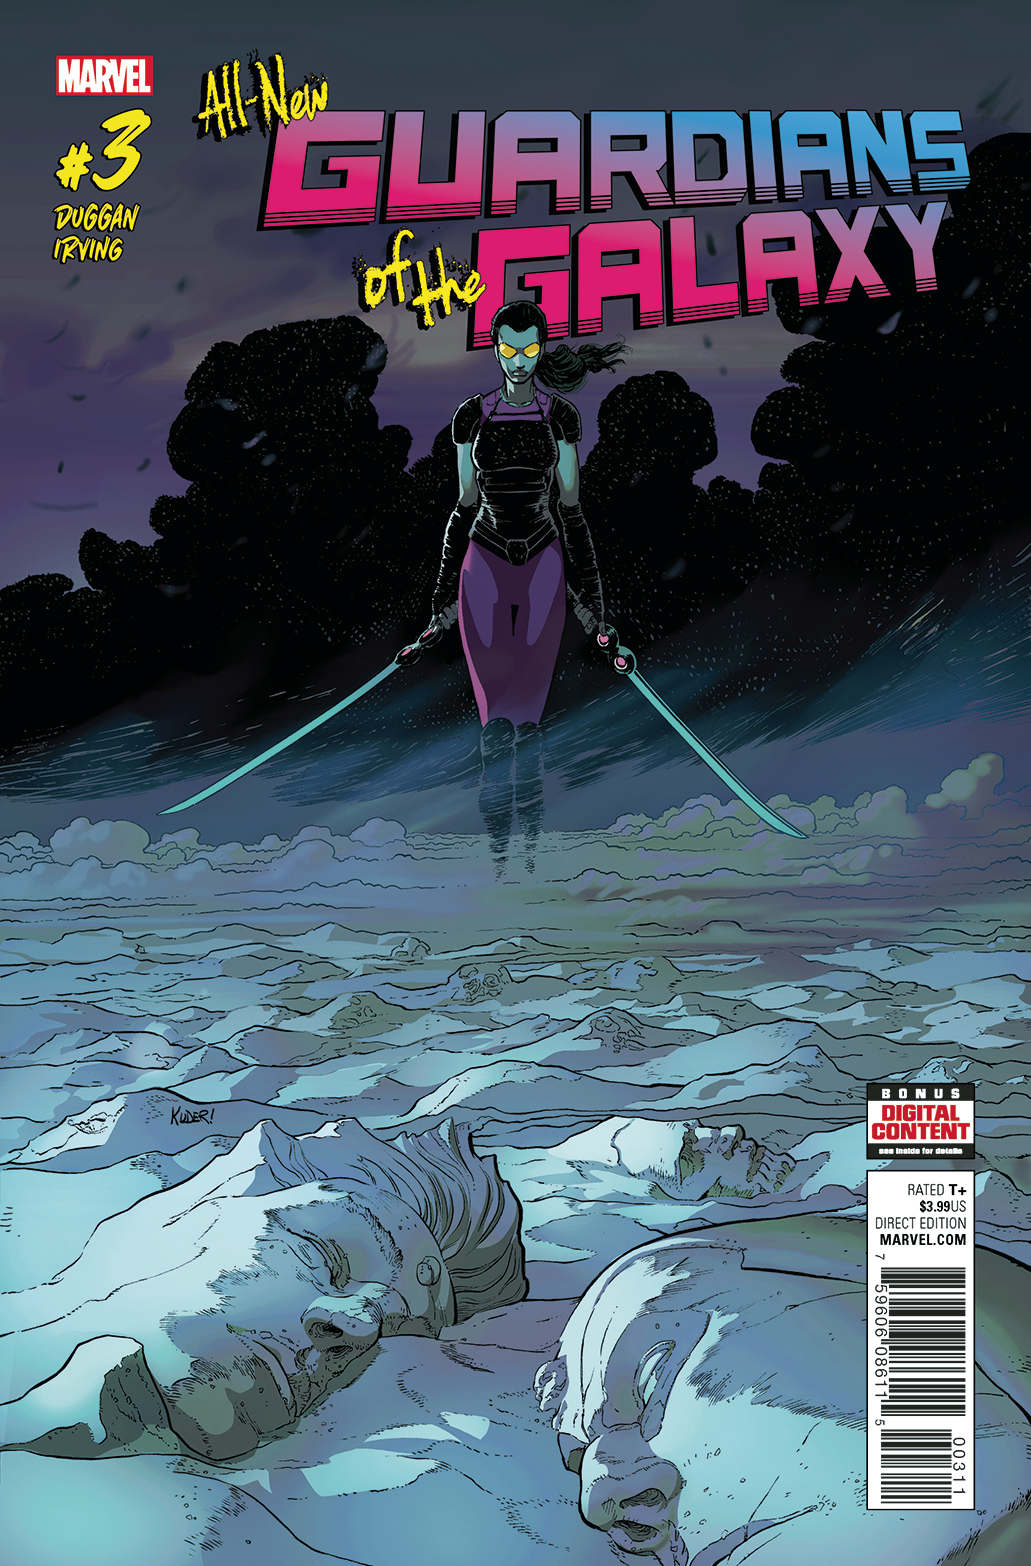 ALL NEW GUARDIANS OF GALAXY #3